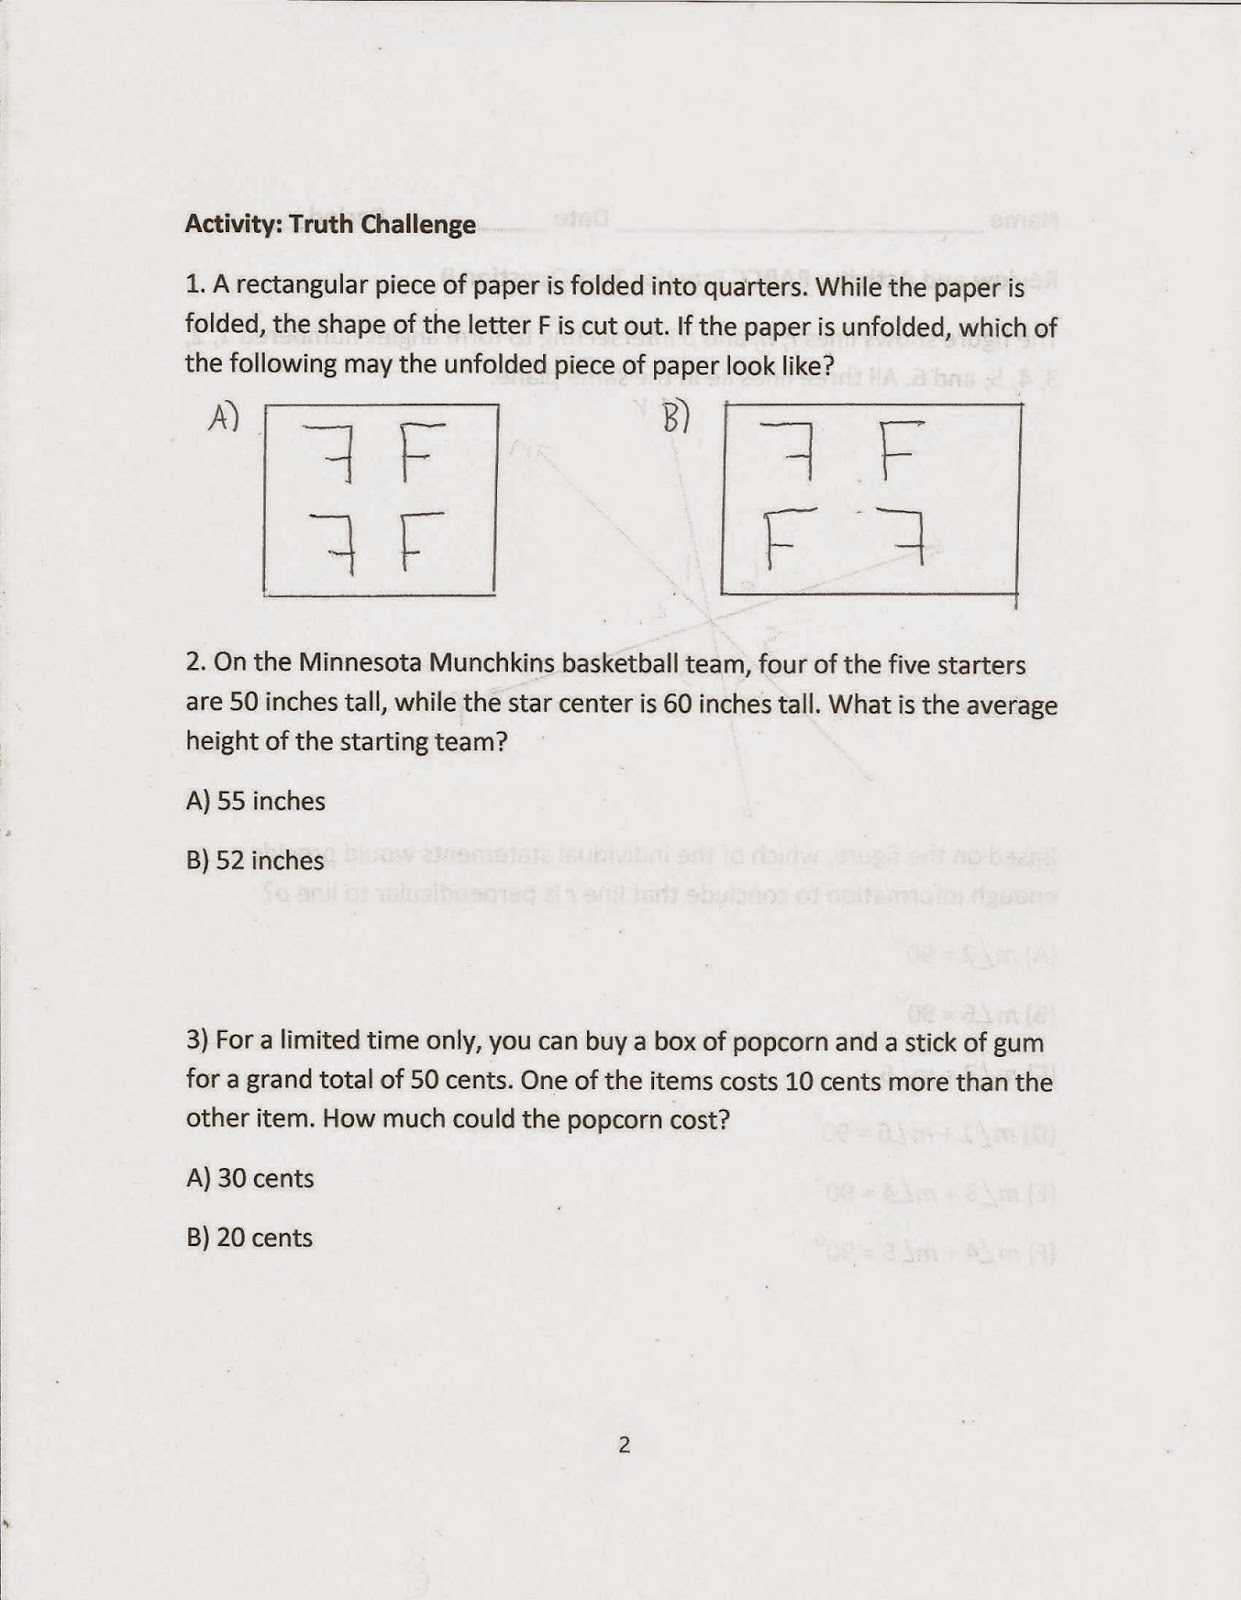 worksheet Parallel And Perpendicular Lines Worksheet slopes of parallel and perpendicular lines worksheet answers 3 8 math geometry common core style april 2015 lines